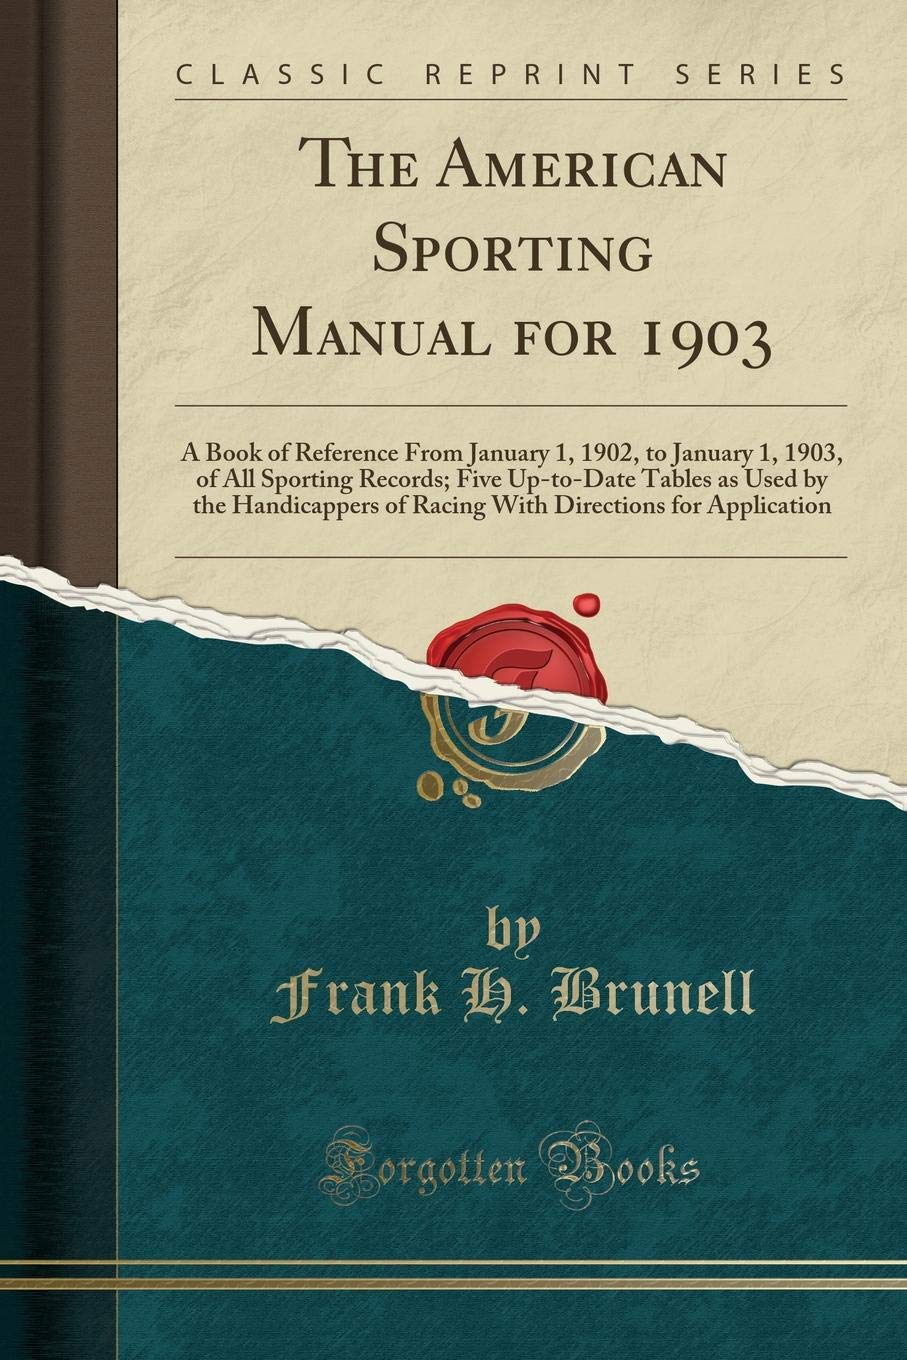 The American Sporting Manual for 1903: A Book of Reference From January 1, 1902, to January 1, 1903, of All Sporting Records; Five Up-to-Date Tables ... Directions for Application (Classic Reprint) ebook